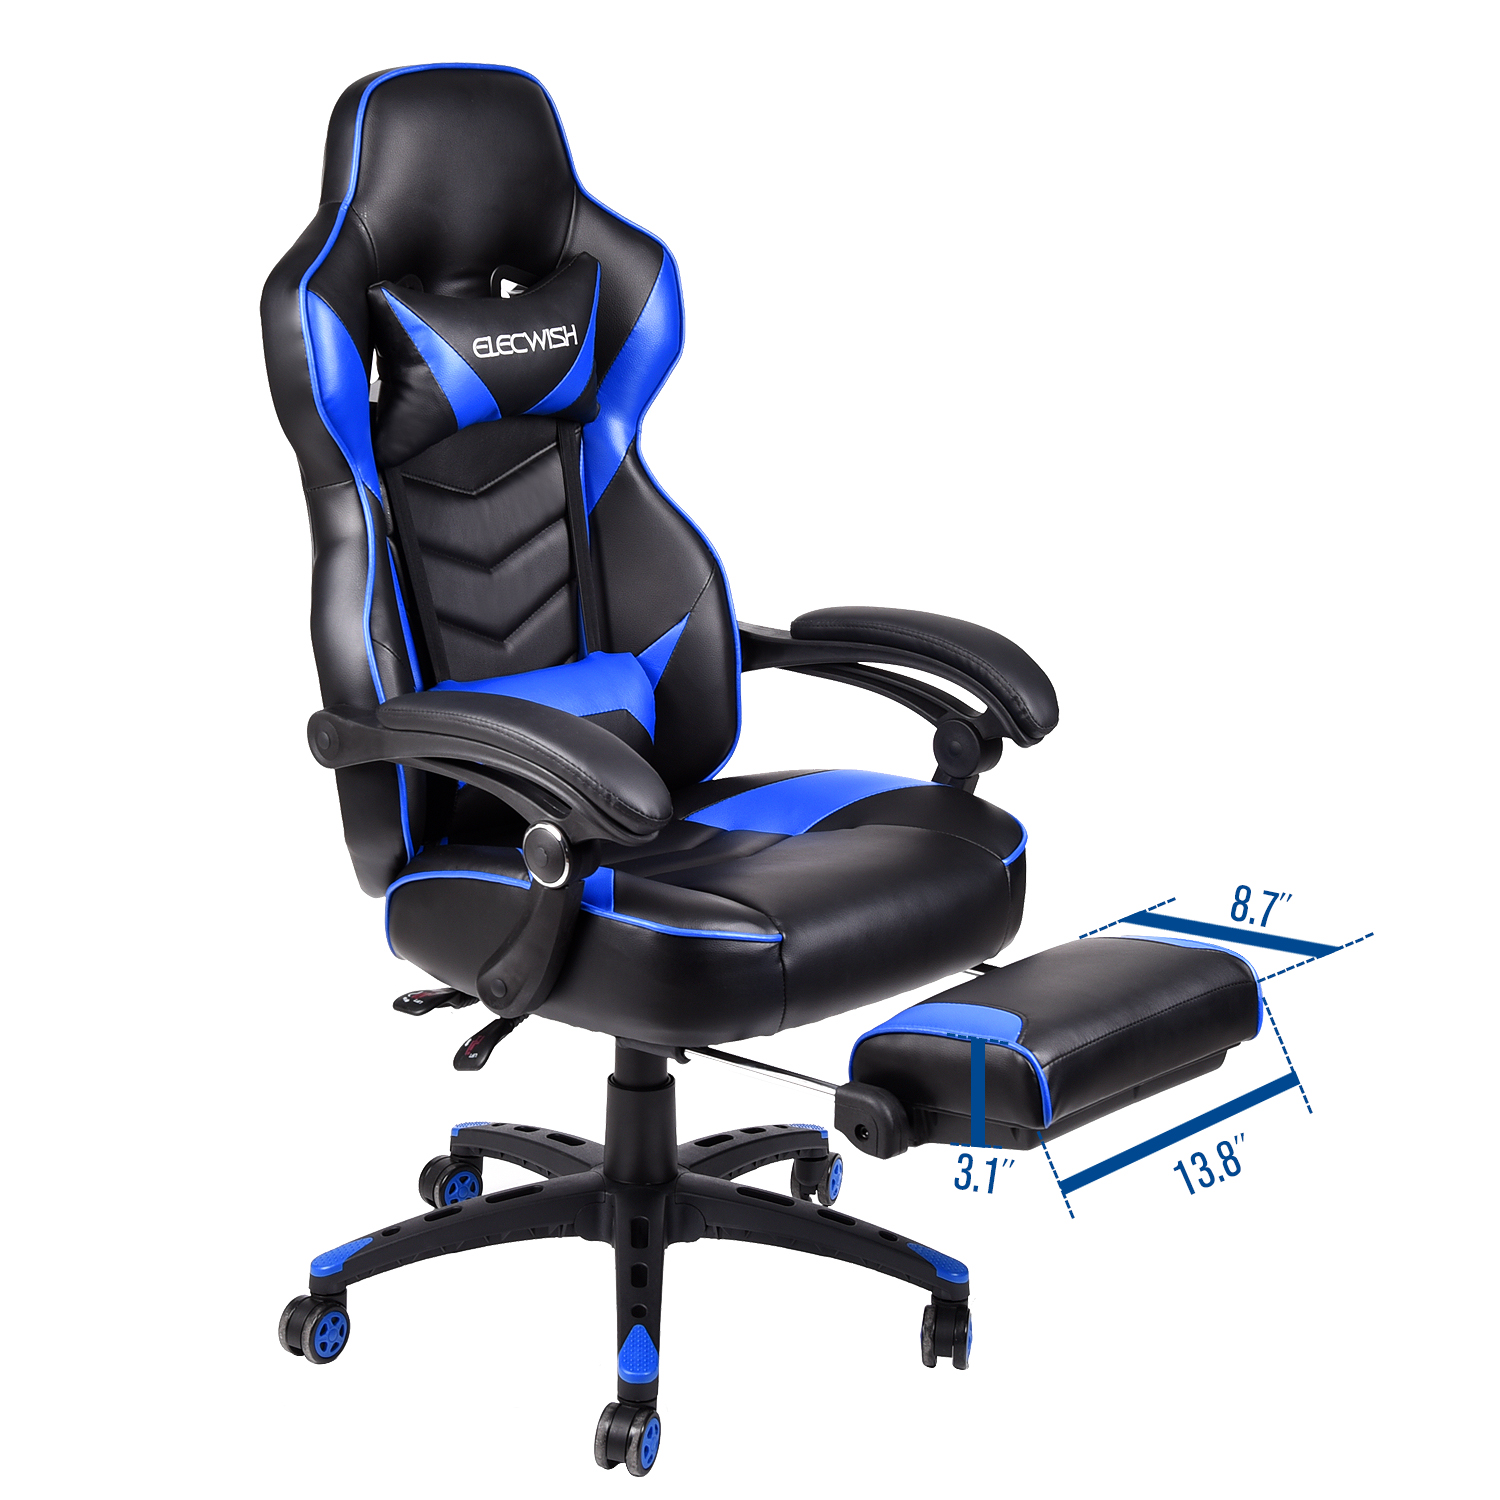 Tremendous Details About High Back Gaming Computer Chair Race Bucket Seat Ergonomic Office Desk Footrest Gmtry Best Dining Table And Chair Ideas Images Gmtryco